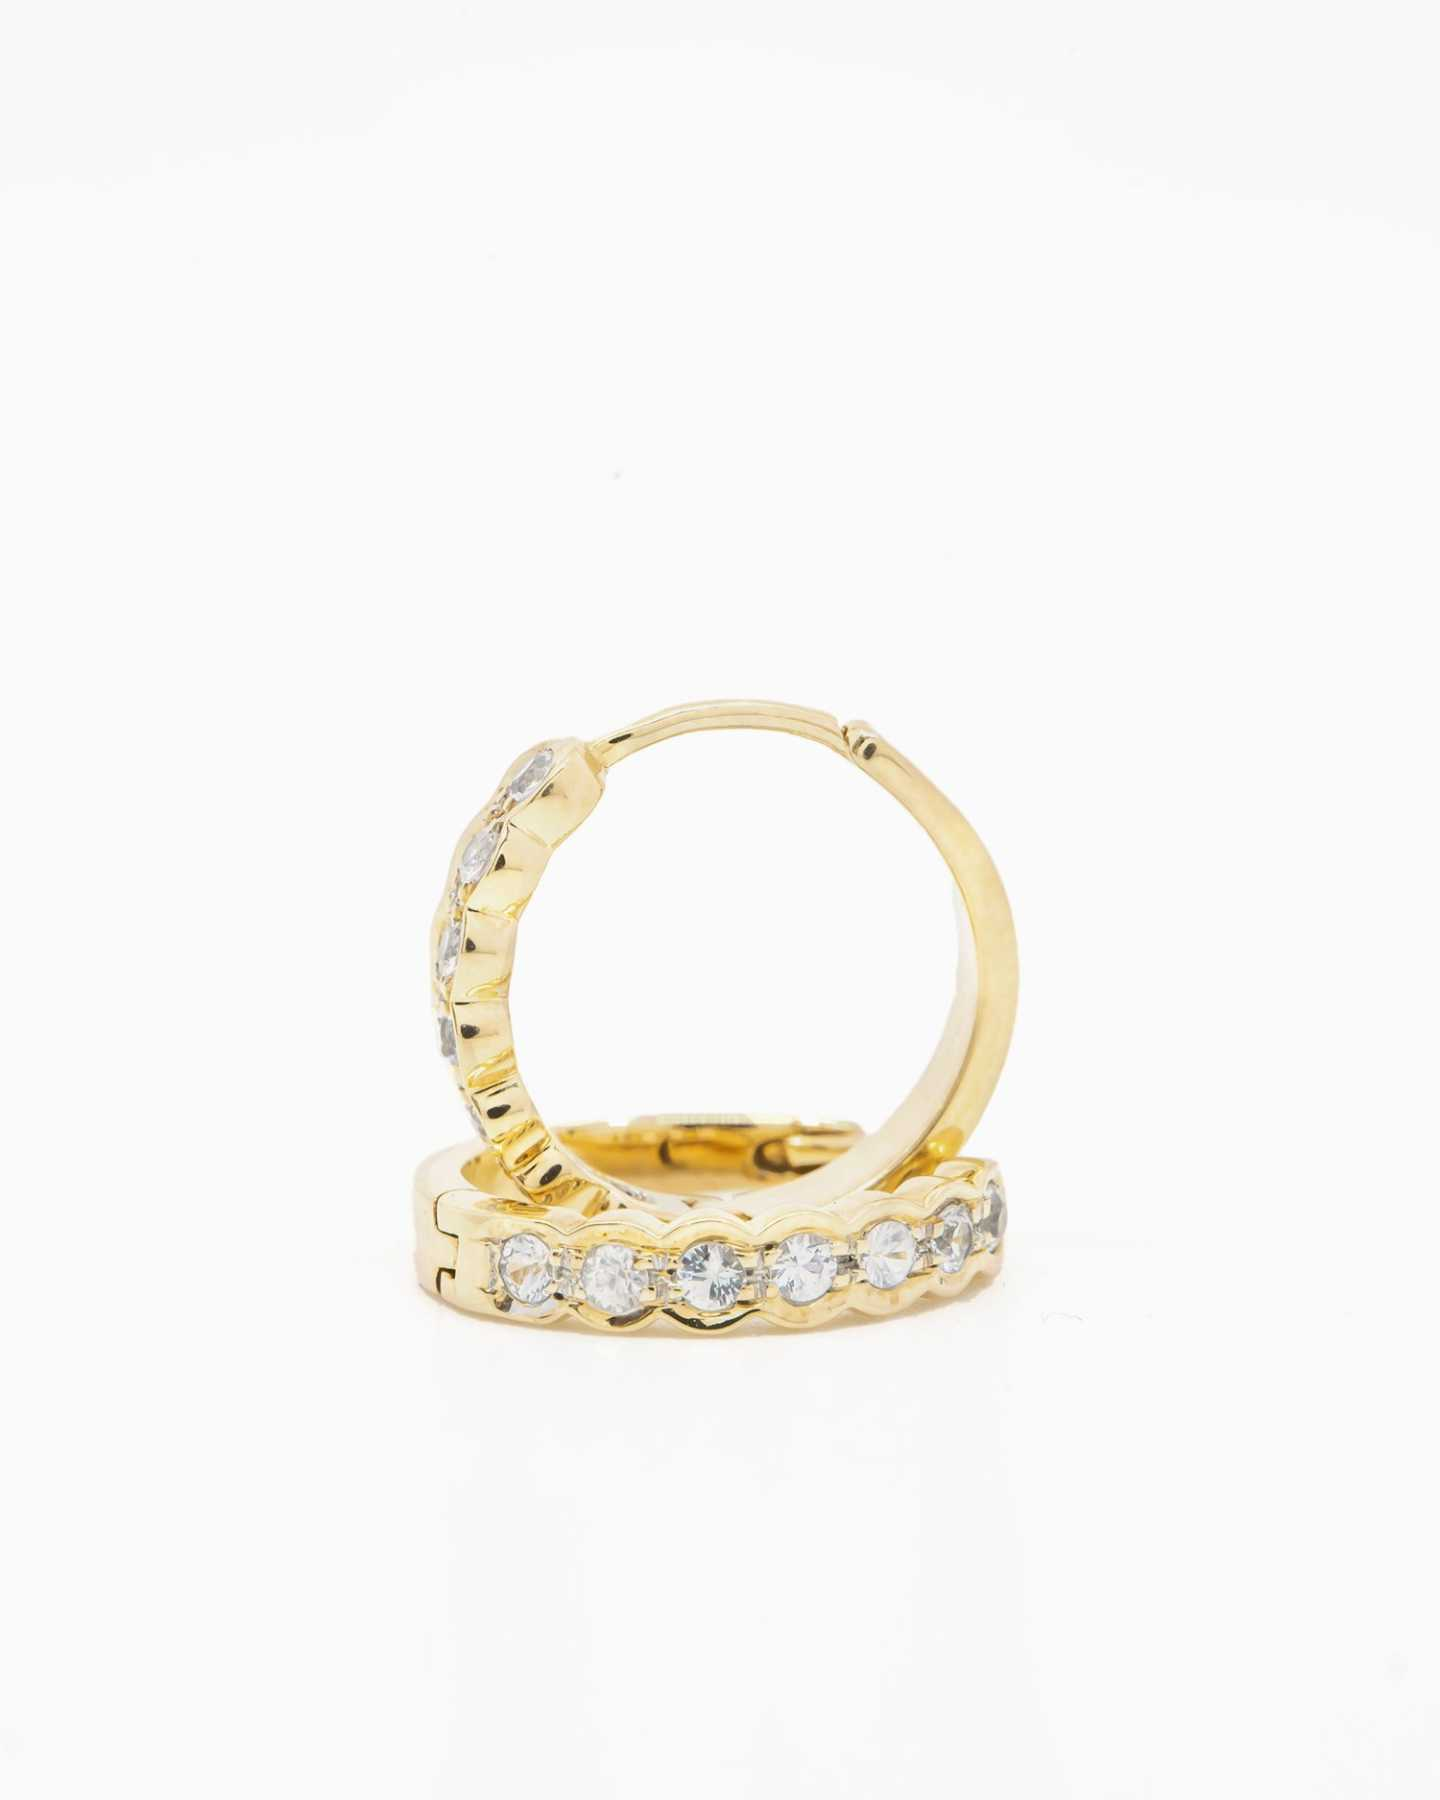 White Sapphire Huggie Earrings - Gold Vermeil - 2 - Thumbnail